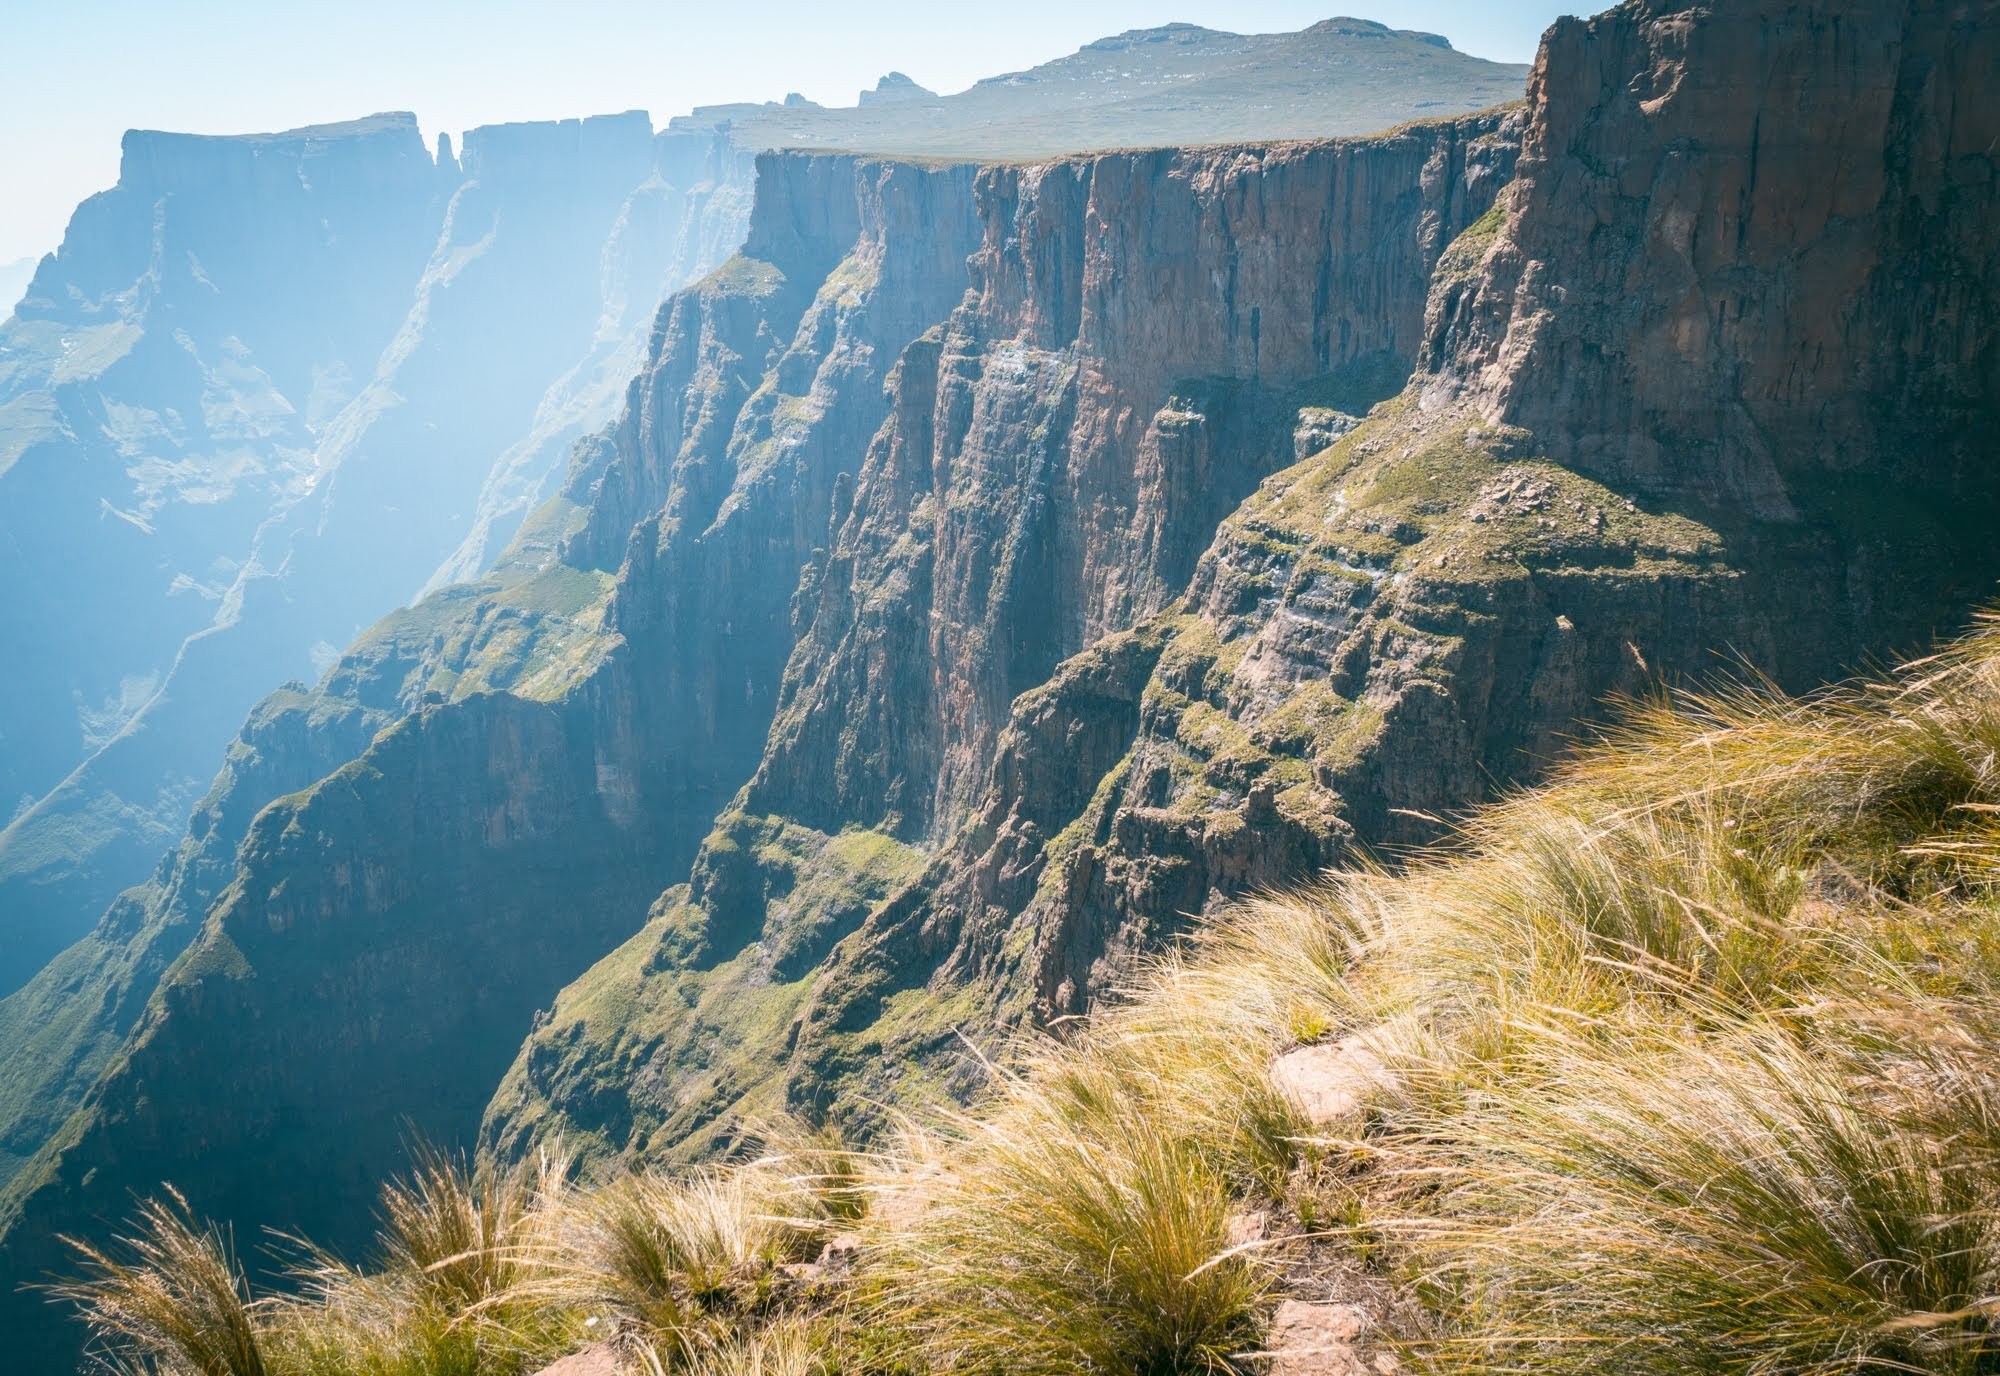 The plateau called the Amphitheatre, part of the majestic Drakensberg Mountain between South Africa and Lesotho.